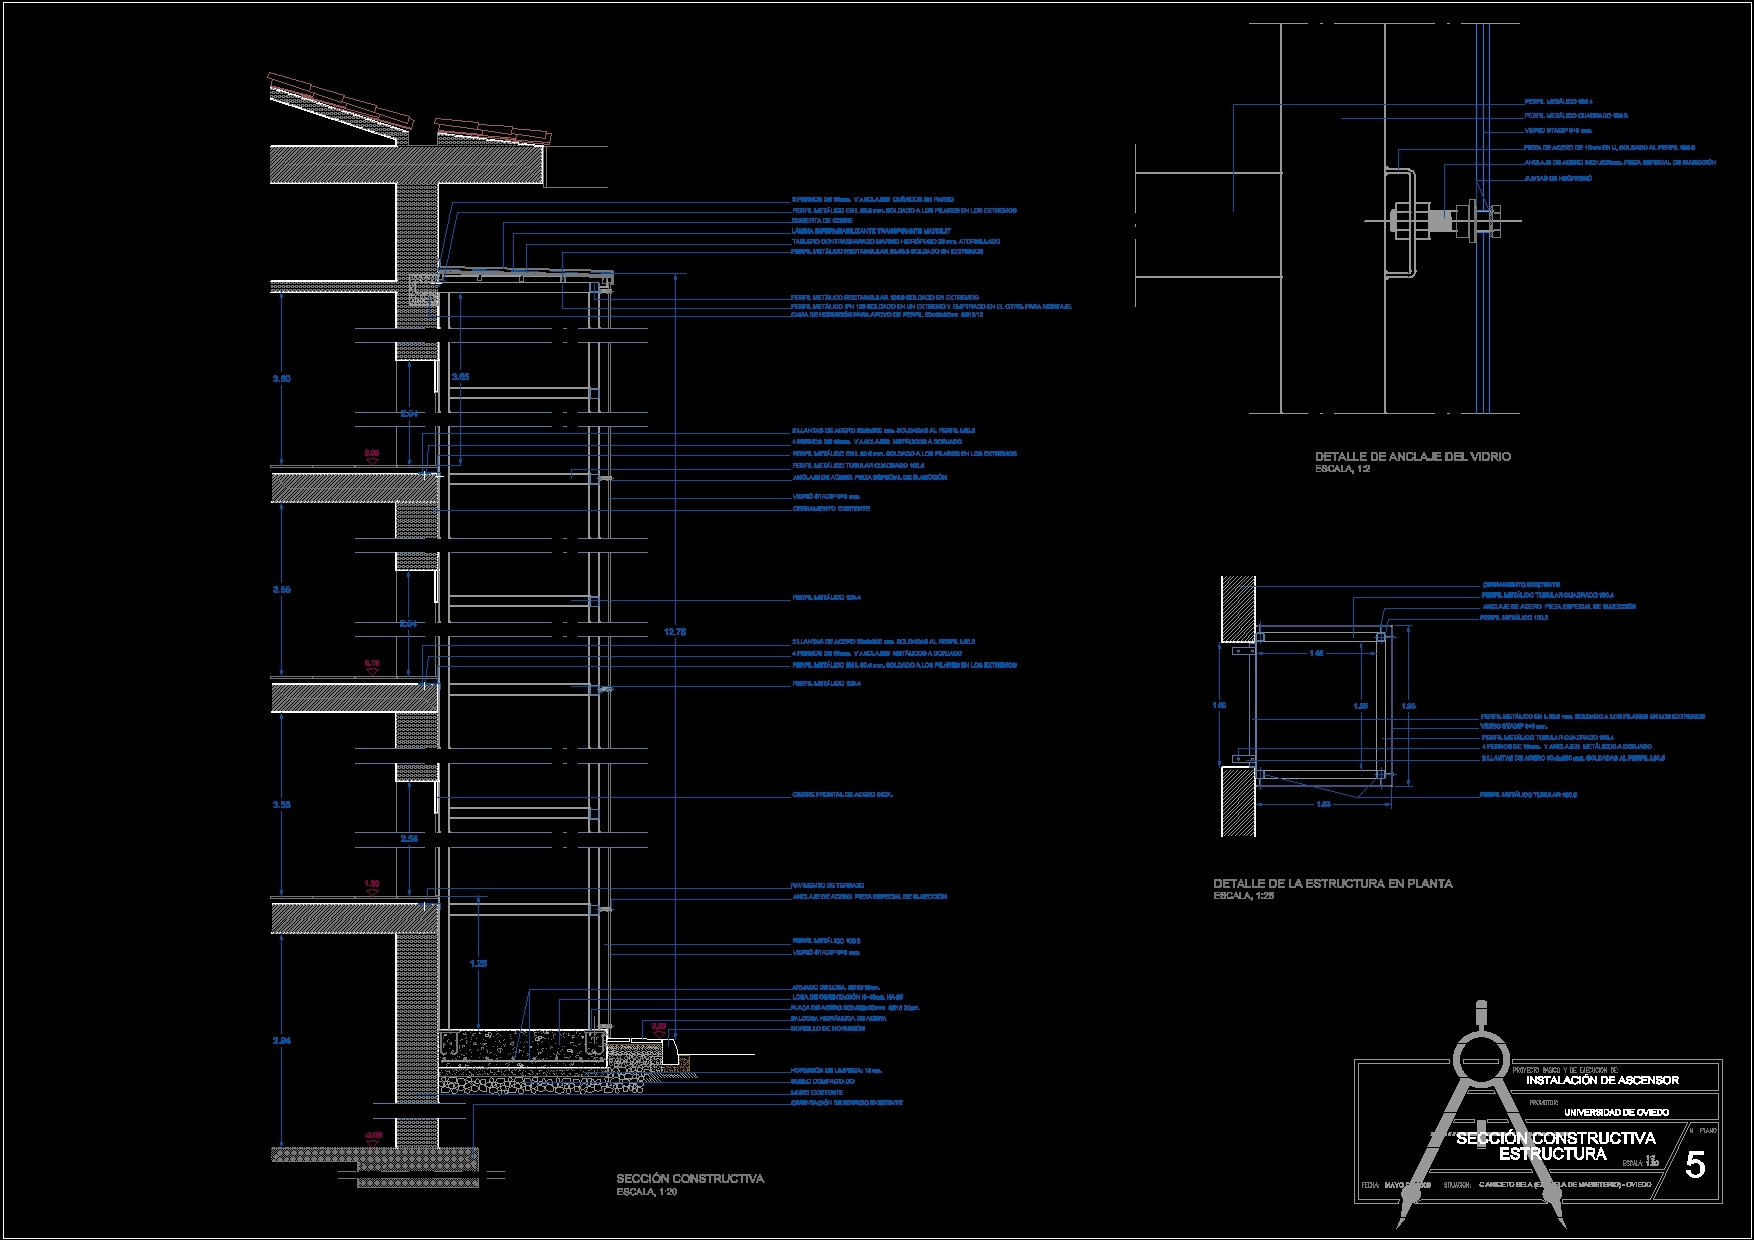 Hydraulic Lift Section : Hydraulic lift construction details dwg section for